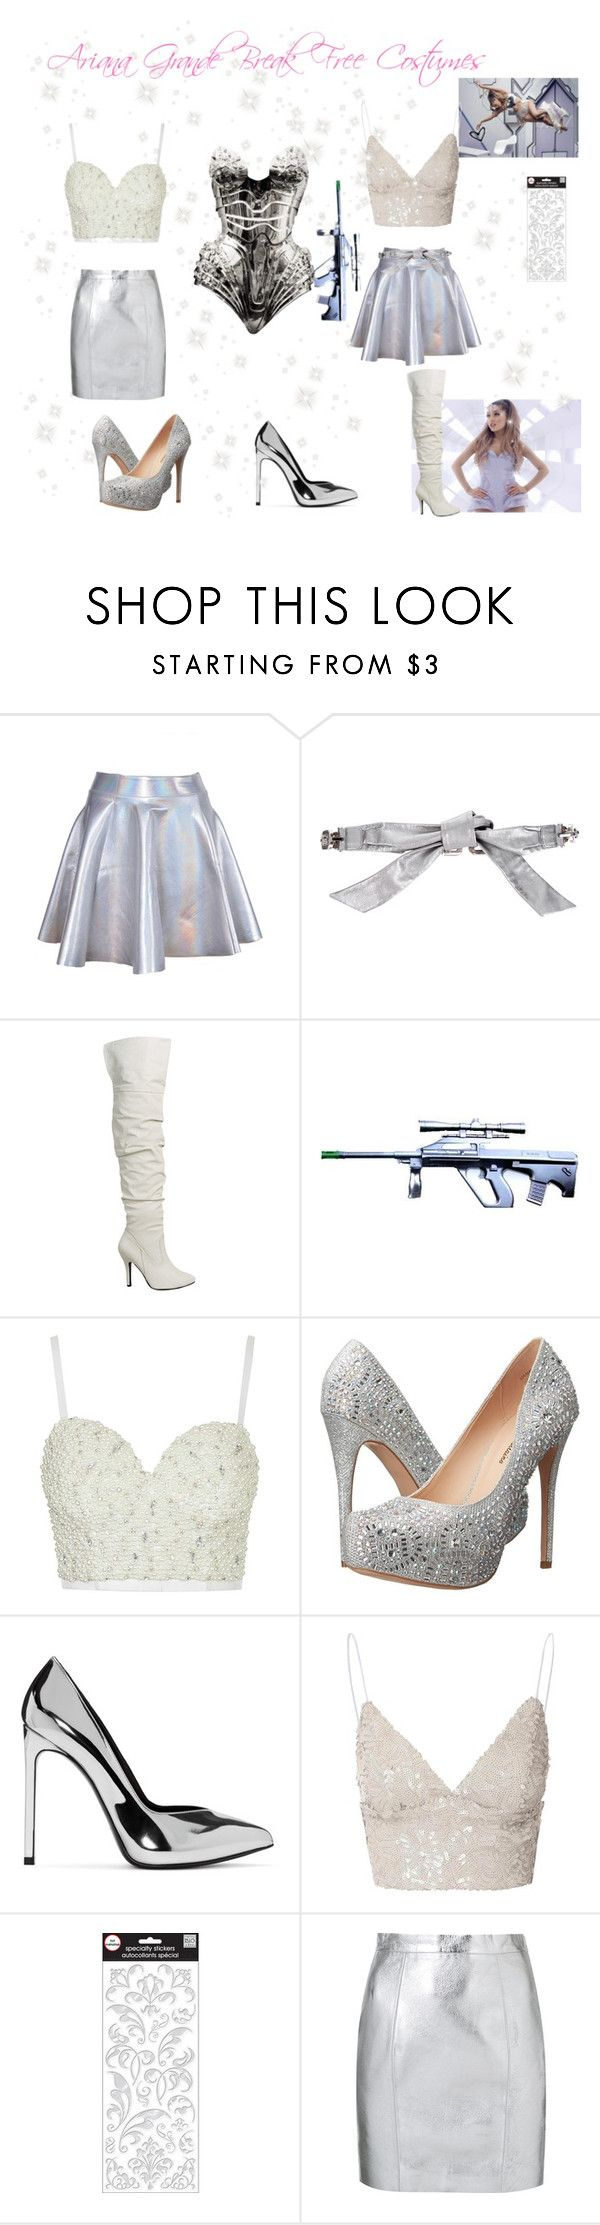 """♡ Ariana Grande Break Free Halloween Costumes ♡"" by kaylalovesowls ❤ liked on Polyvore featuring Dolce&Gabbana, Thierry Mugler, Topshop, Lauren Lorraine, Yves Saint Laurent and Glamorous"